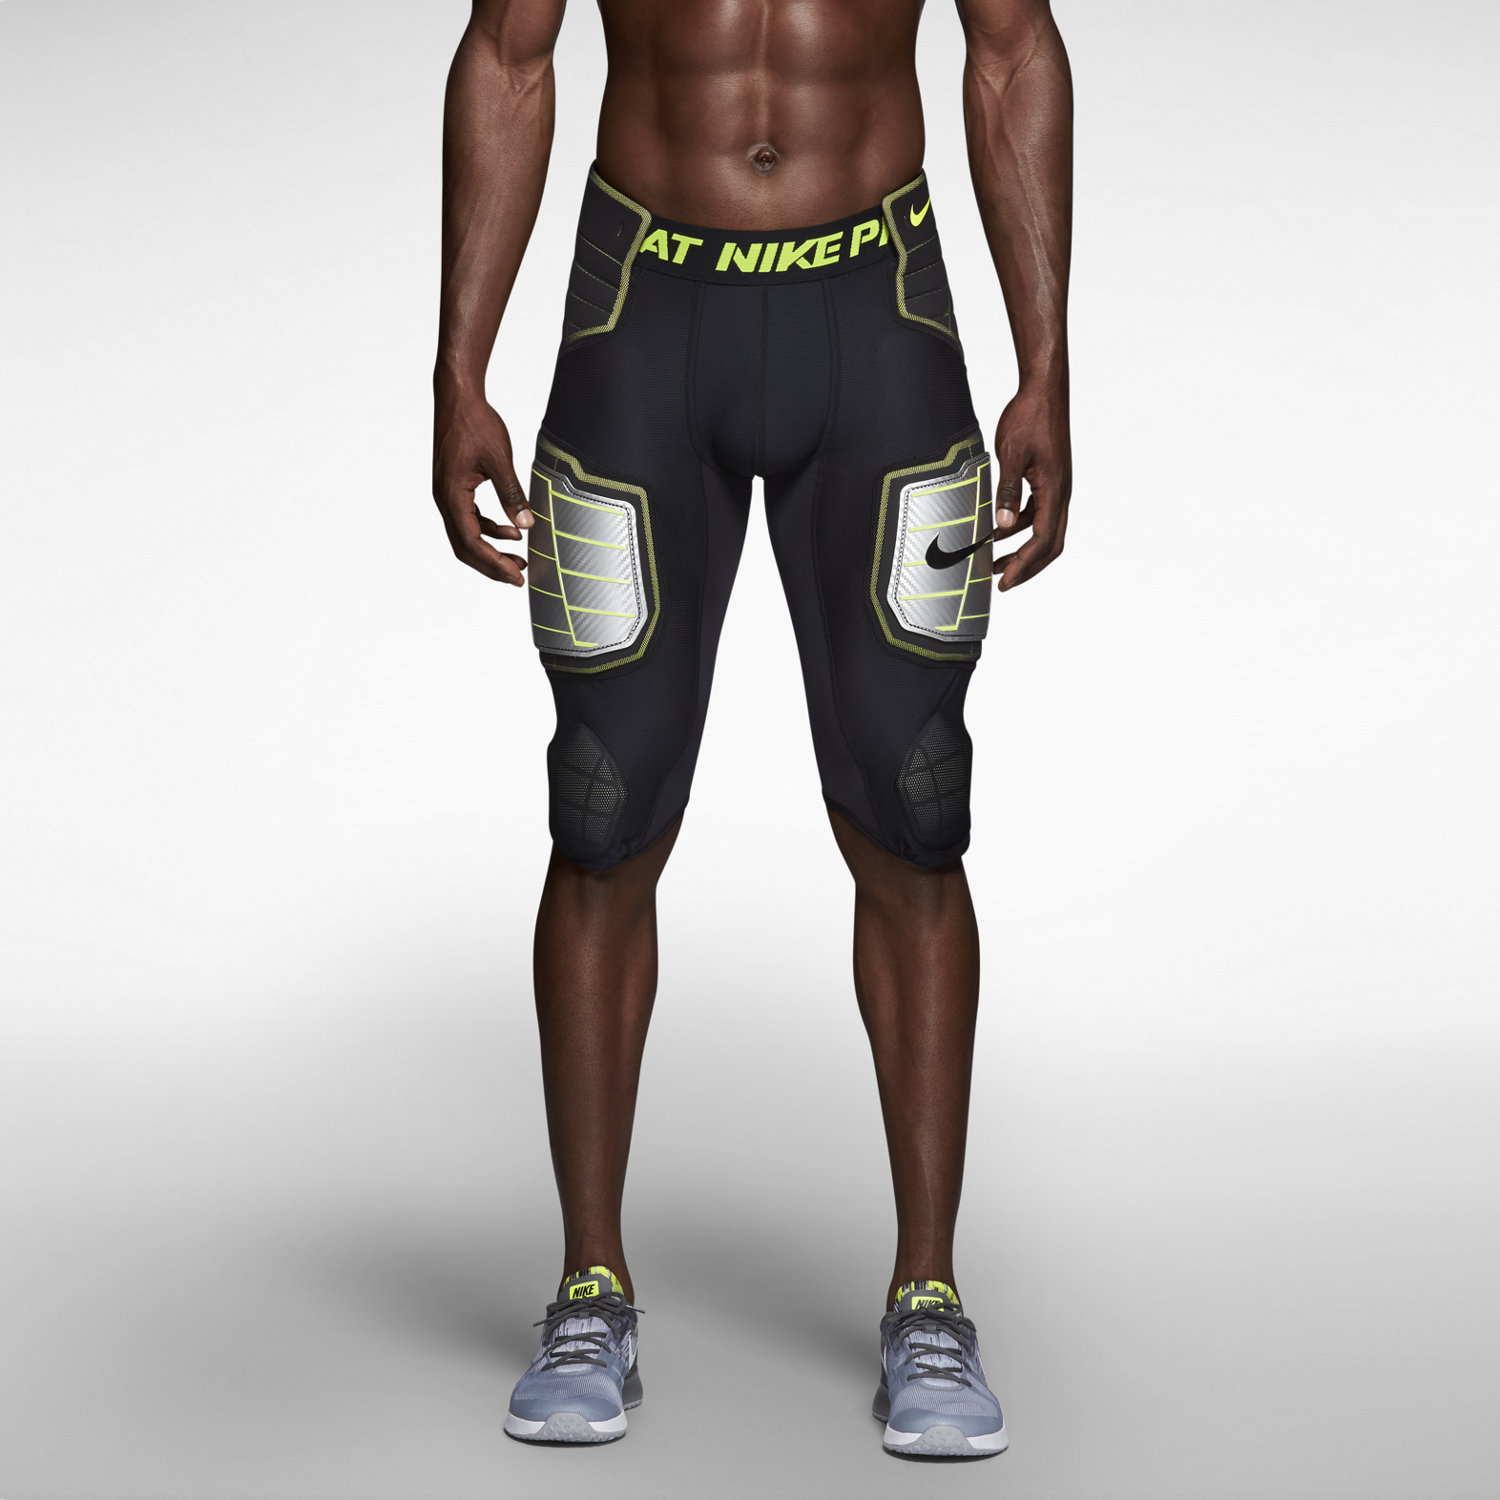 new nike pro combat hyperstrong padded compression football shorts pants tights ebay. Black Bedroom Furniture Sets. Home Design Ideas